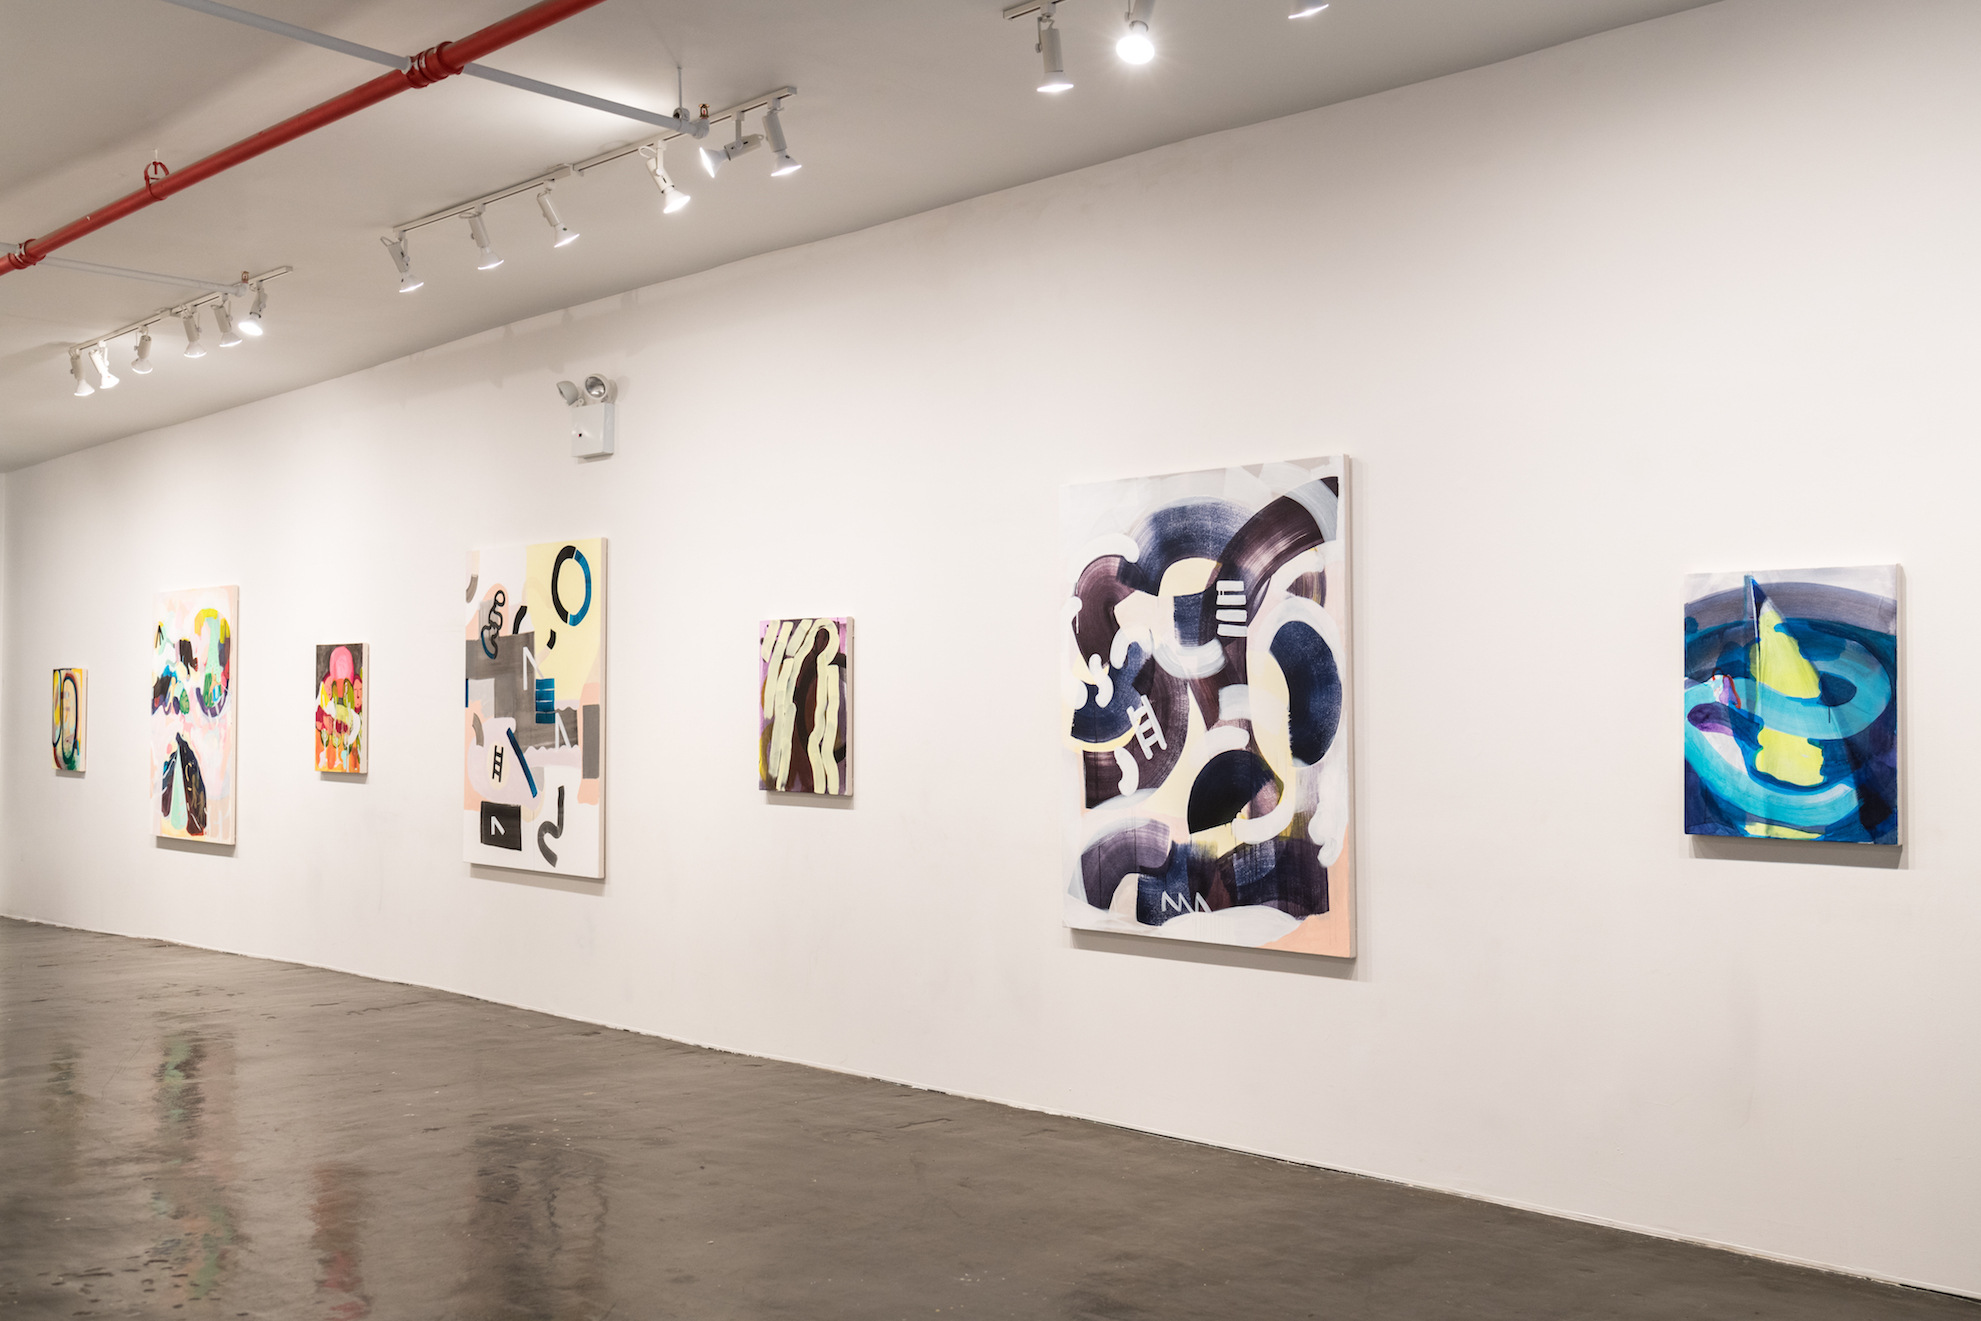 Installation views of paintings at Recess. Seven paintings are visible from the photographs, in various sizes.